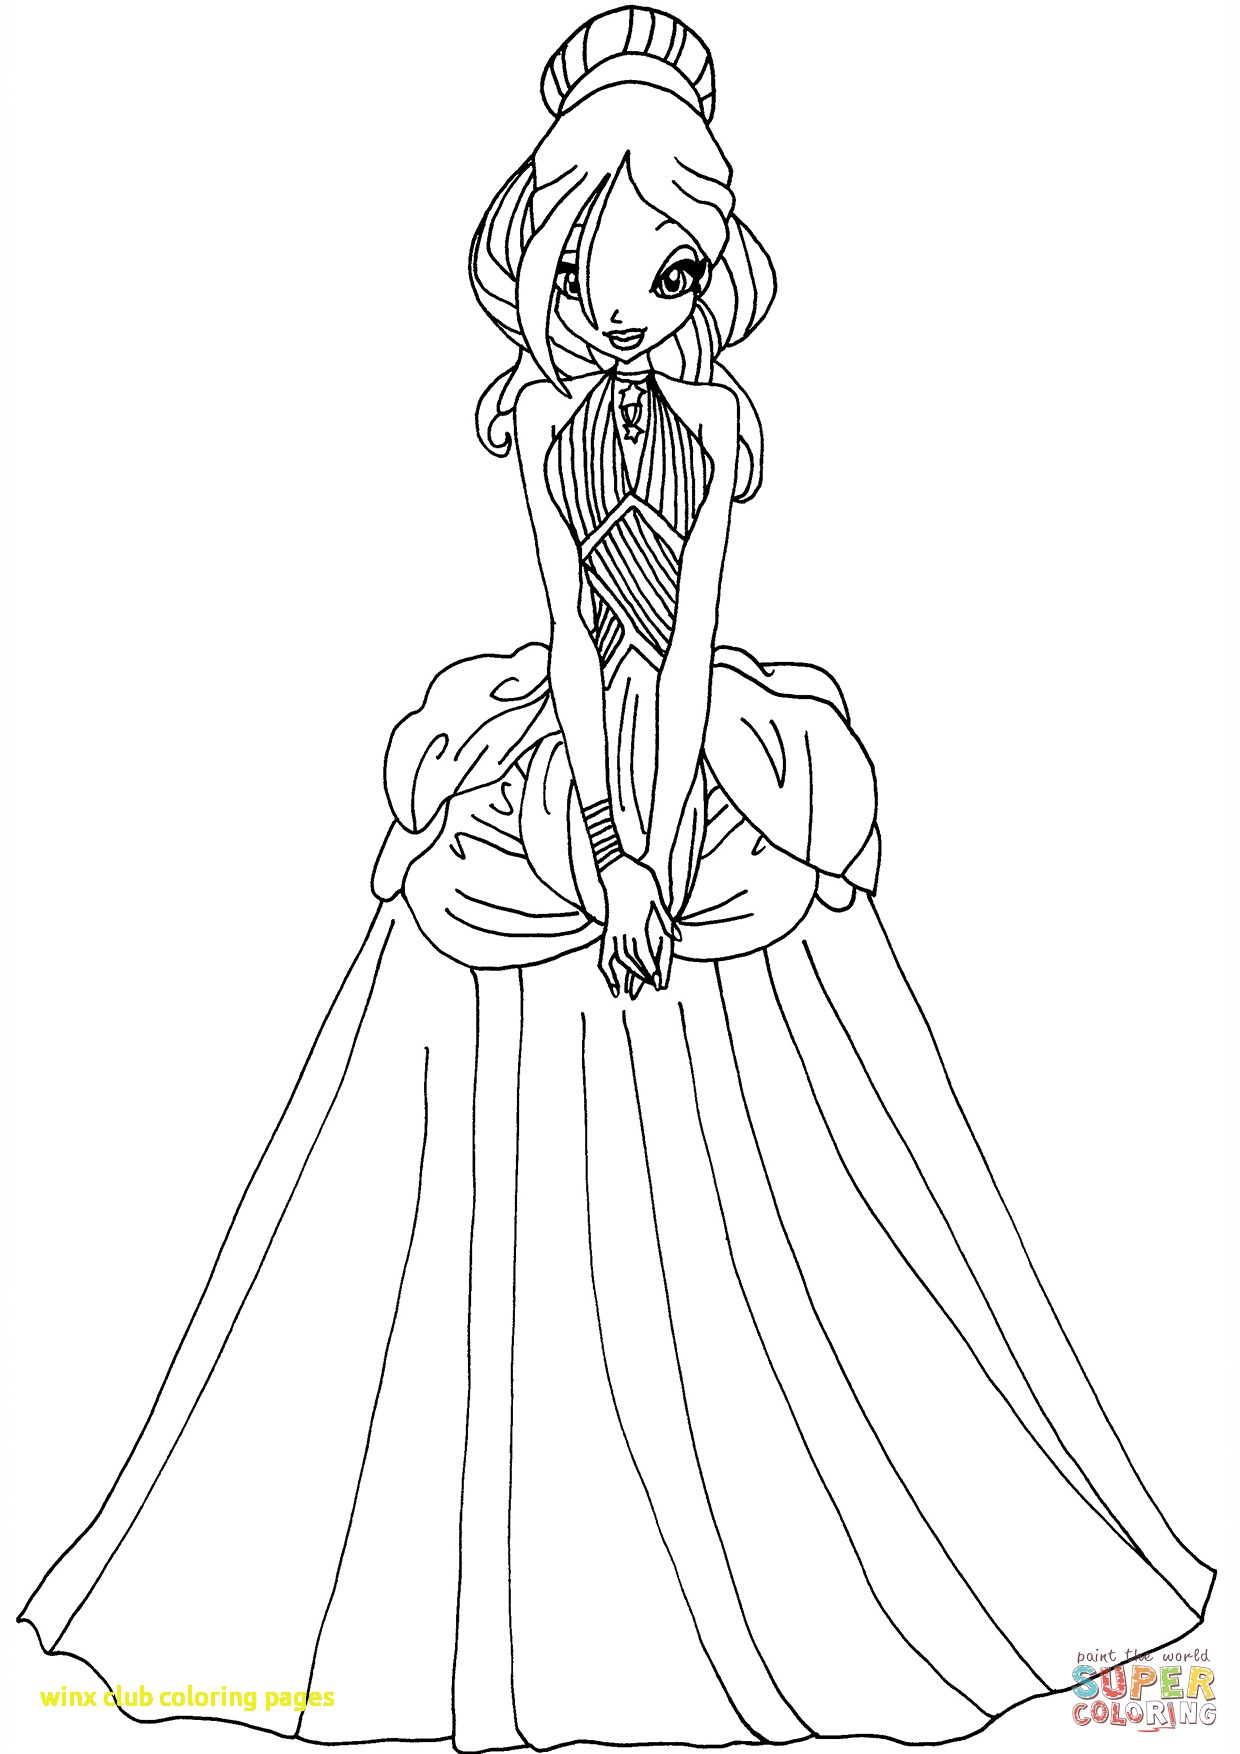 1240x1754 Winx Club Coloring Pages With For Kid Winx Club Coloring Pages